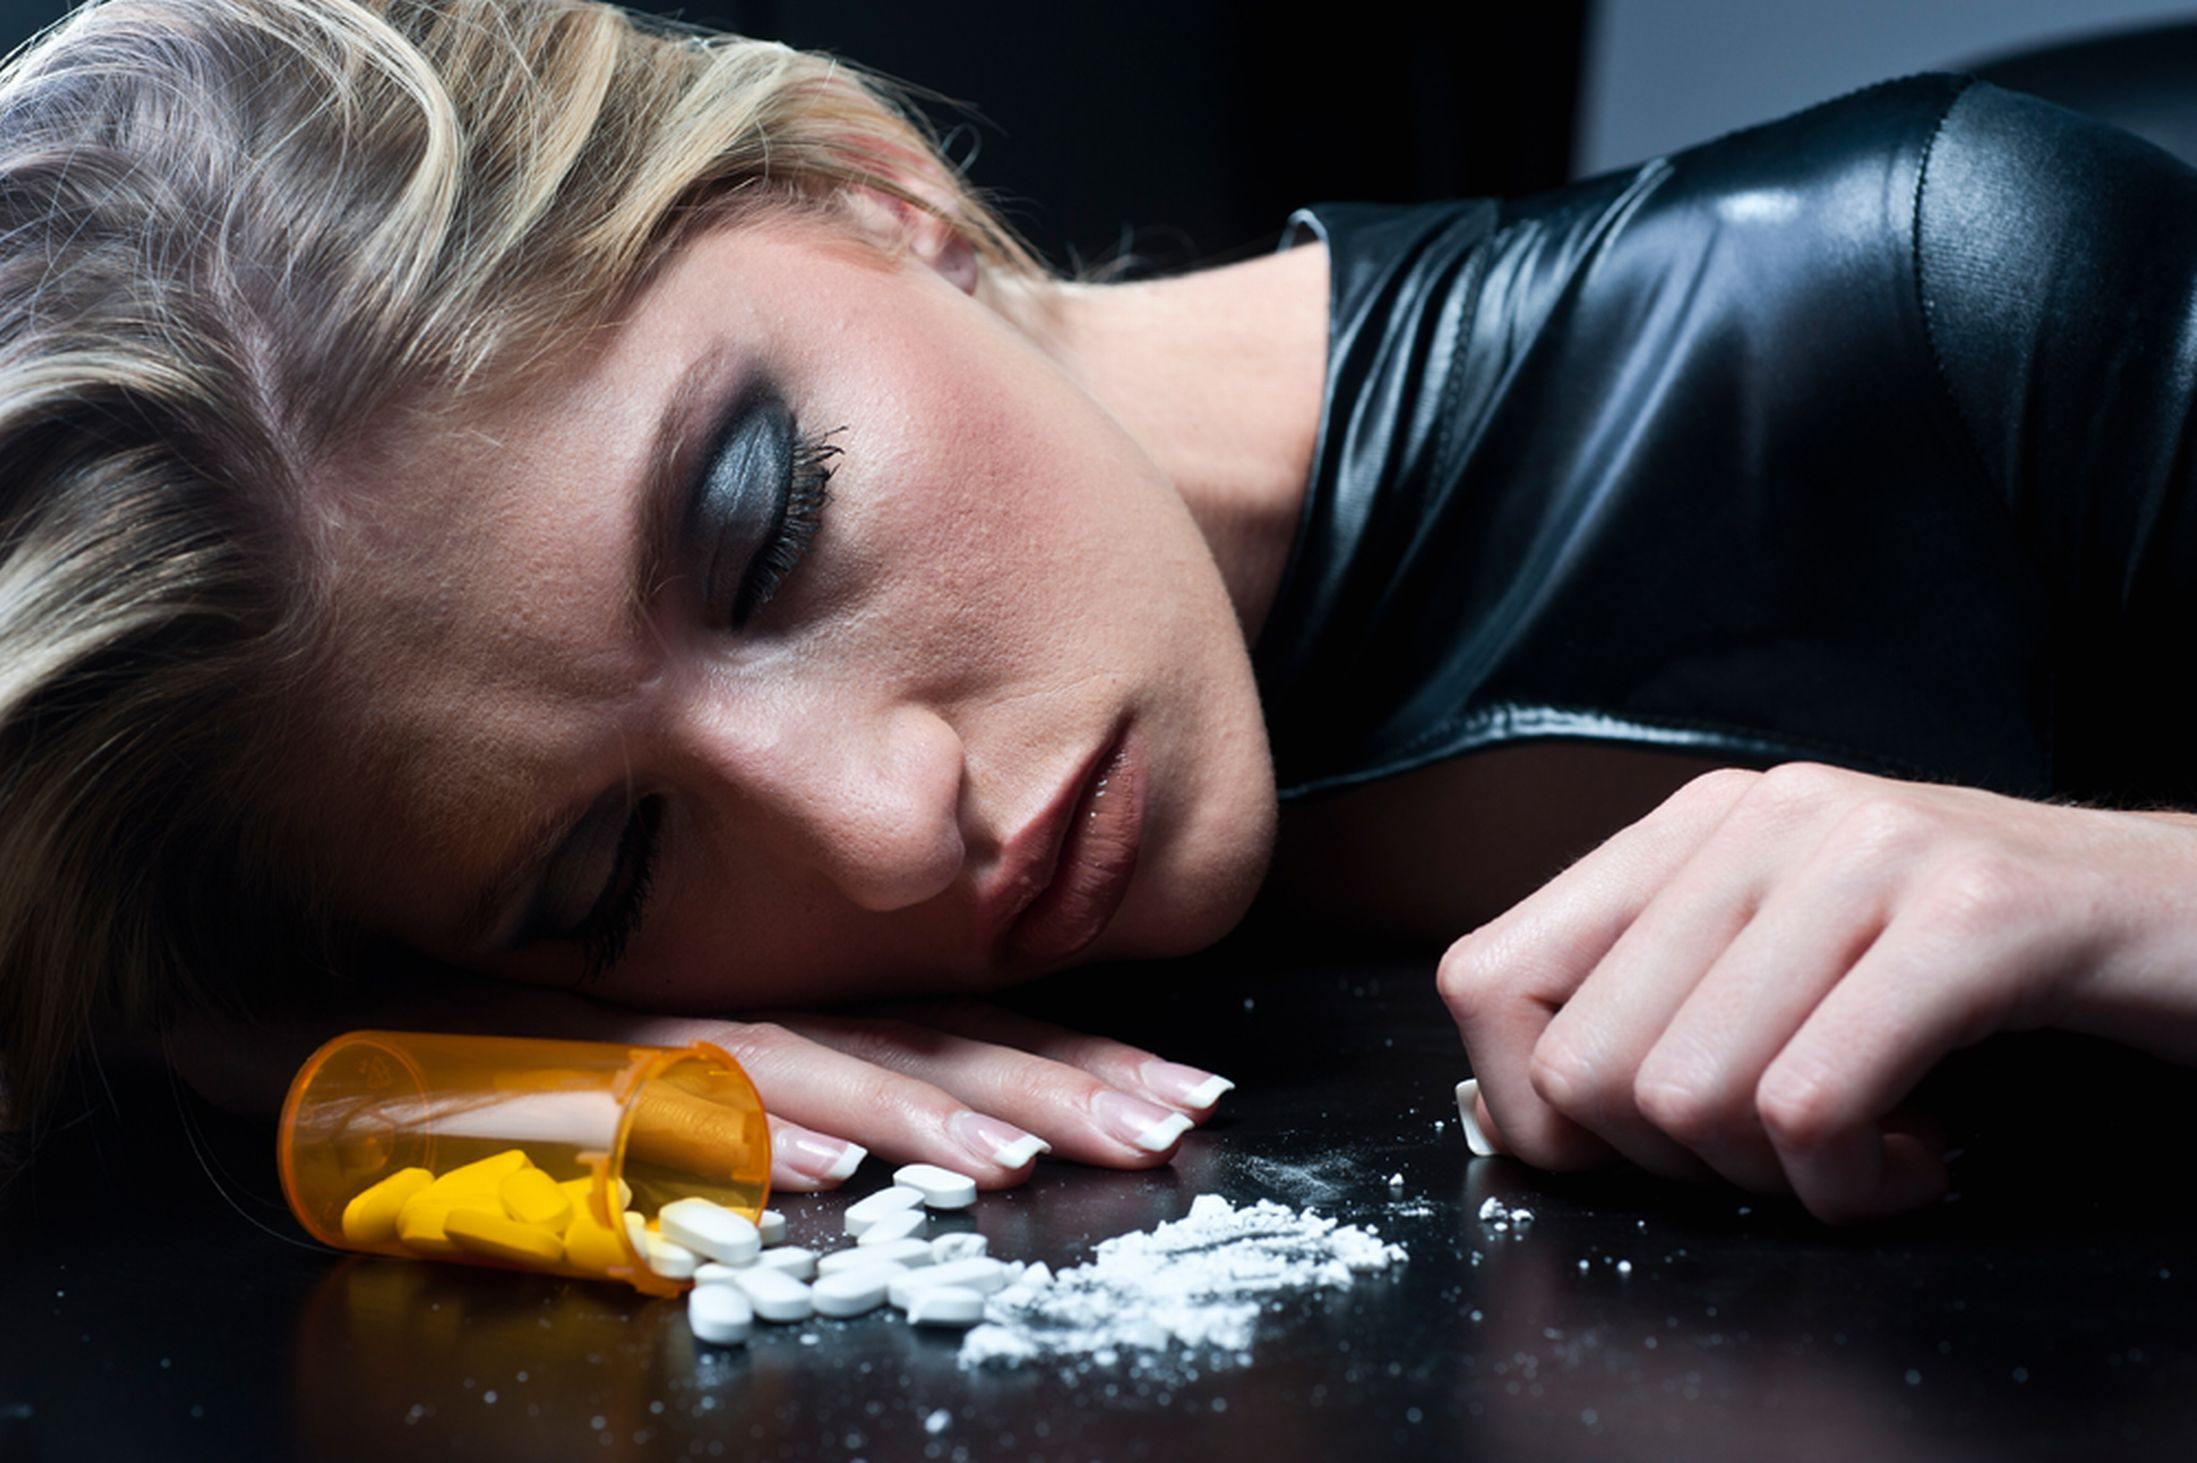 We must change the way we talk about drug addiction